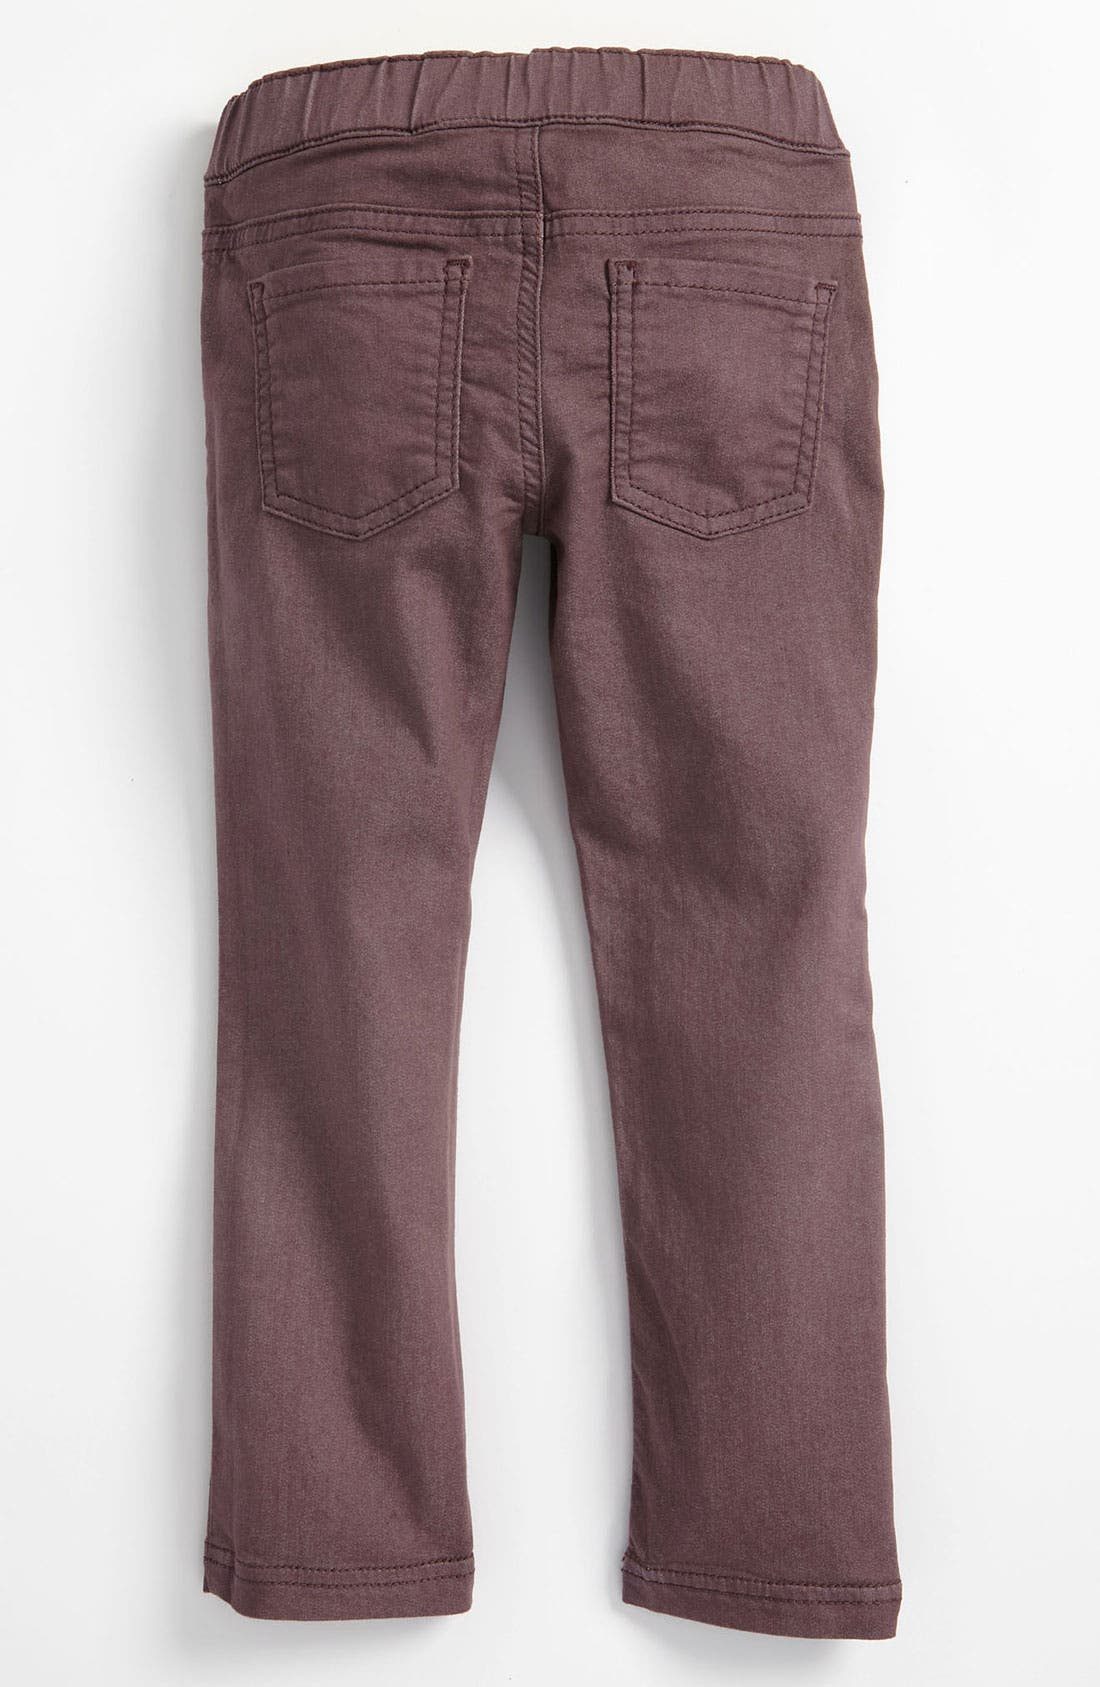 Alternate Image 1 Selected - United Colors of Benetton Kids Jeggings (Toddler)